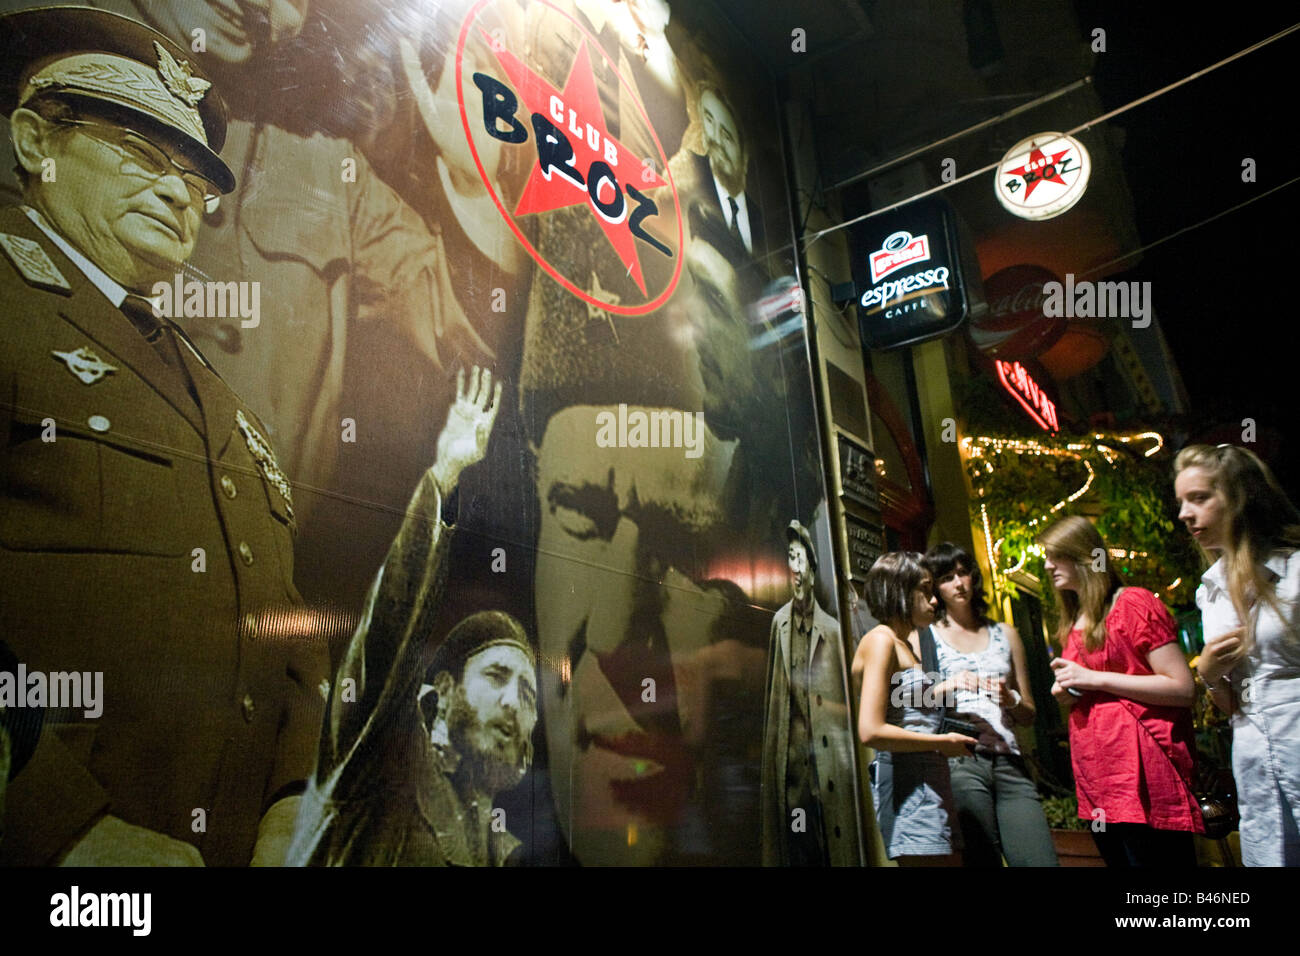 A night club in the Serbian city of Nis, Club Broz, named after the longtime Yugoslav strongman, Josip Broz Tito. - Stock Image